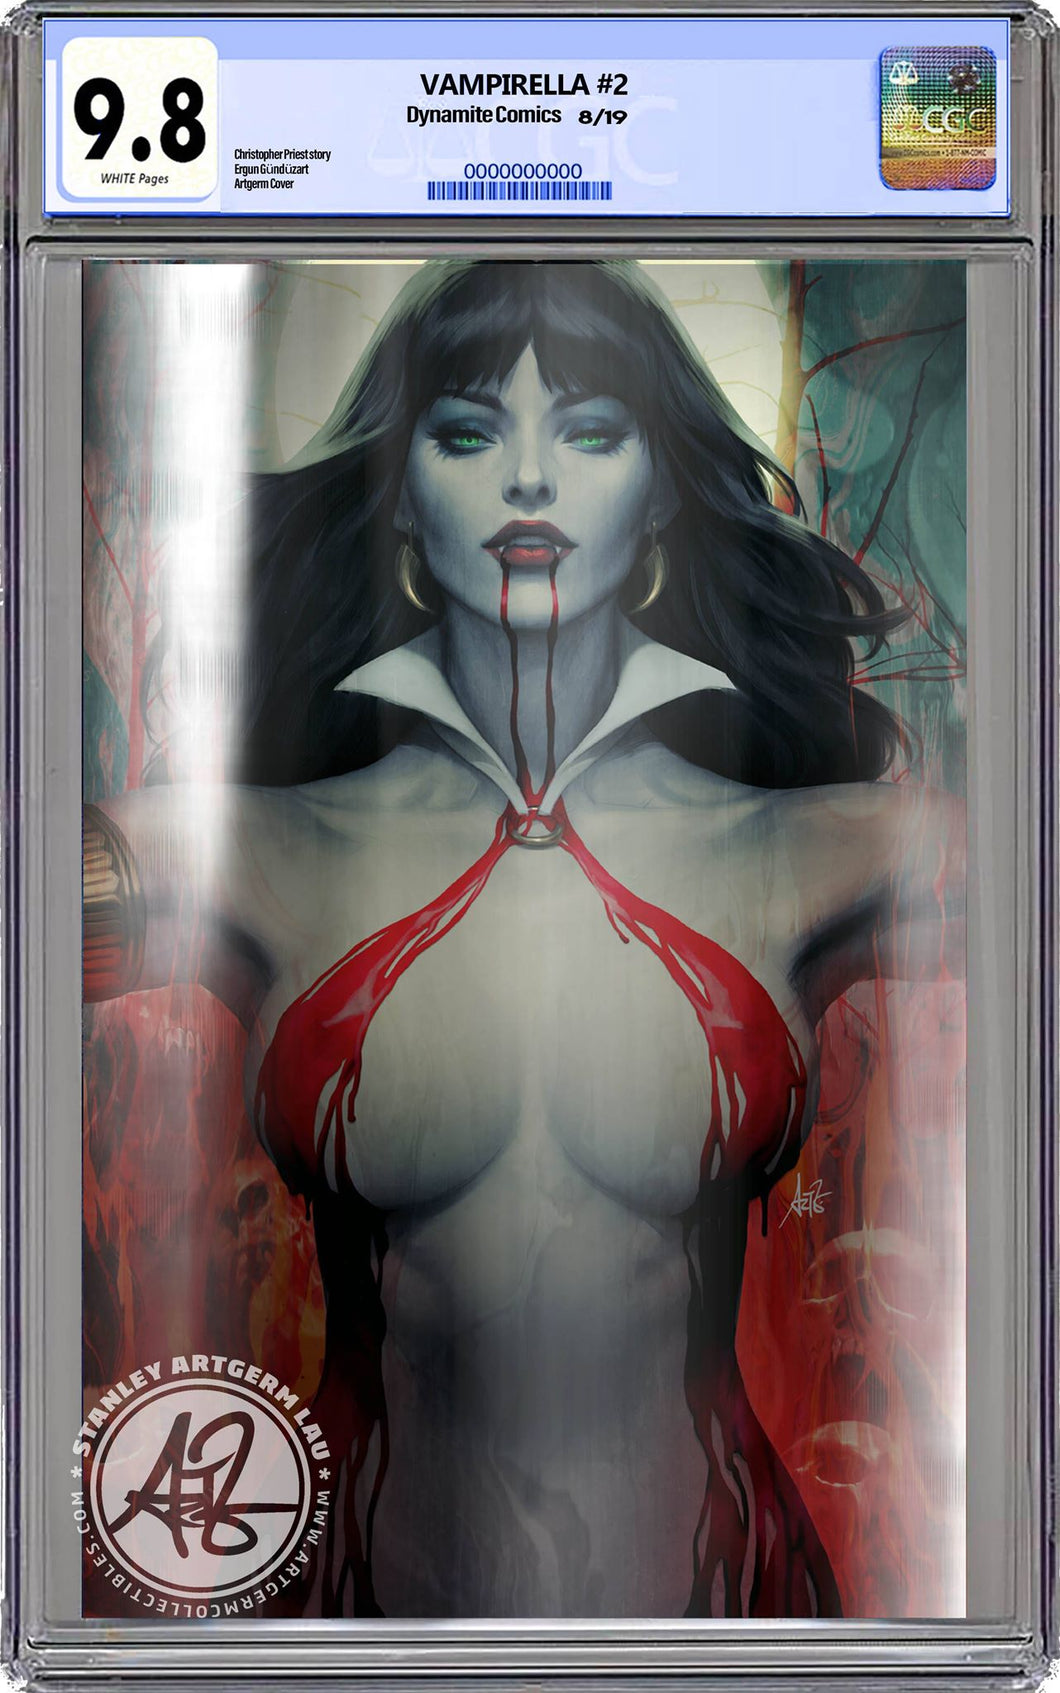 Vampirella #2 FOIL Virgin Artgerm Colletibles Exclusive CGC Graded Guaranteed 9.8 (PRE-ORDER - 8/21/2019 release date)